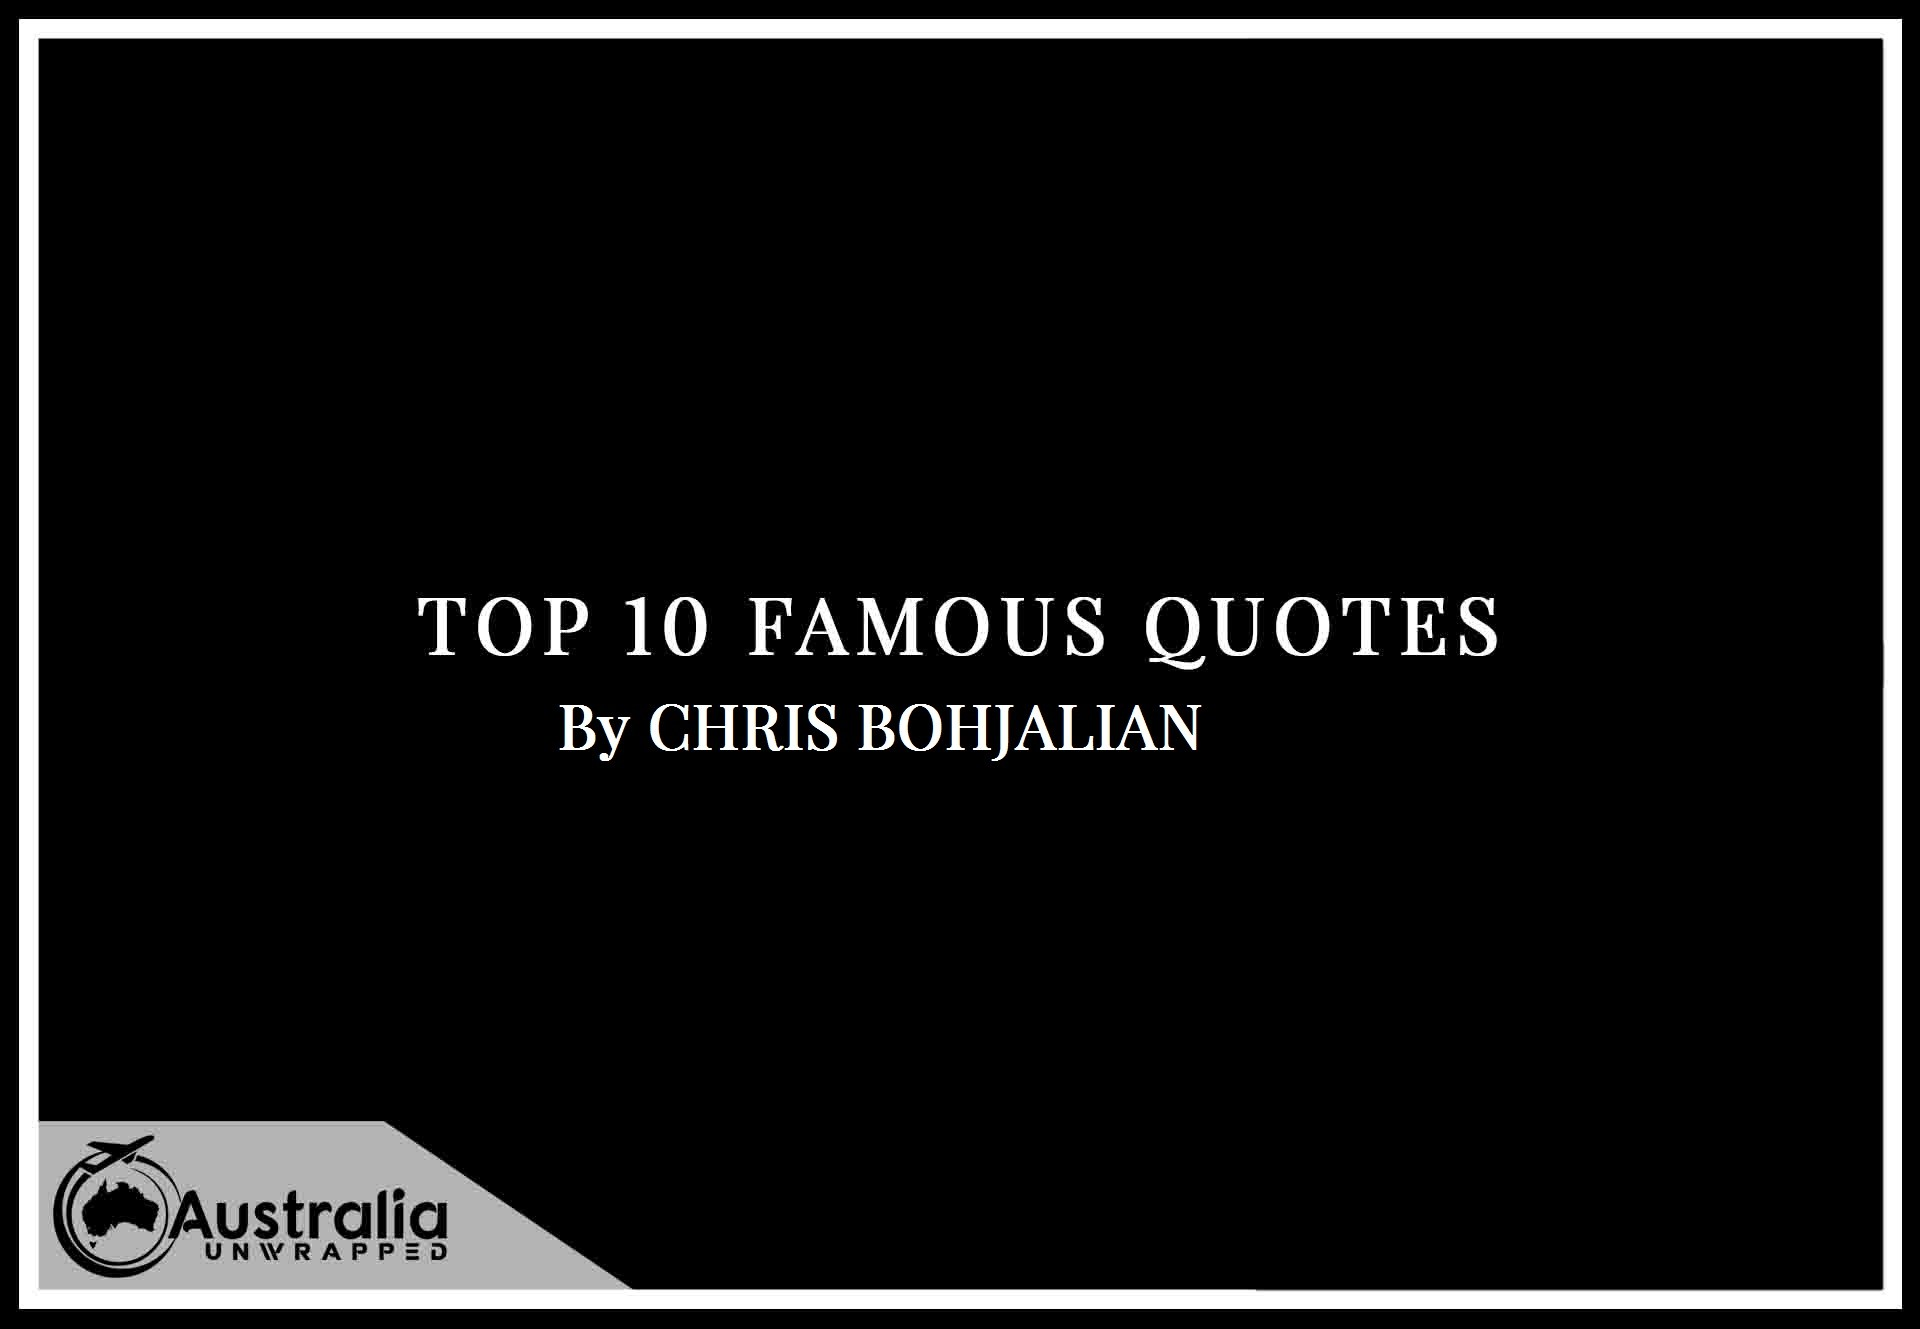 Chris Bohjalian's Top 10 Popular and Famous Quotes